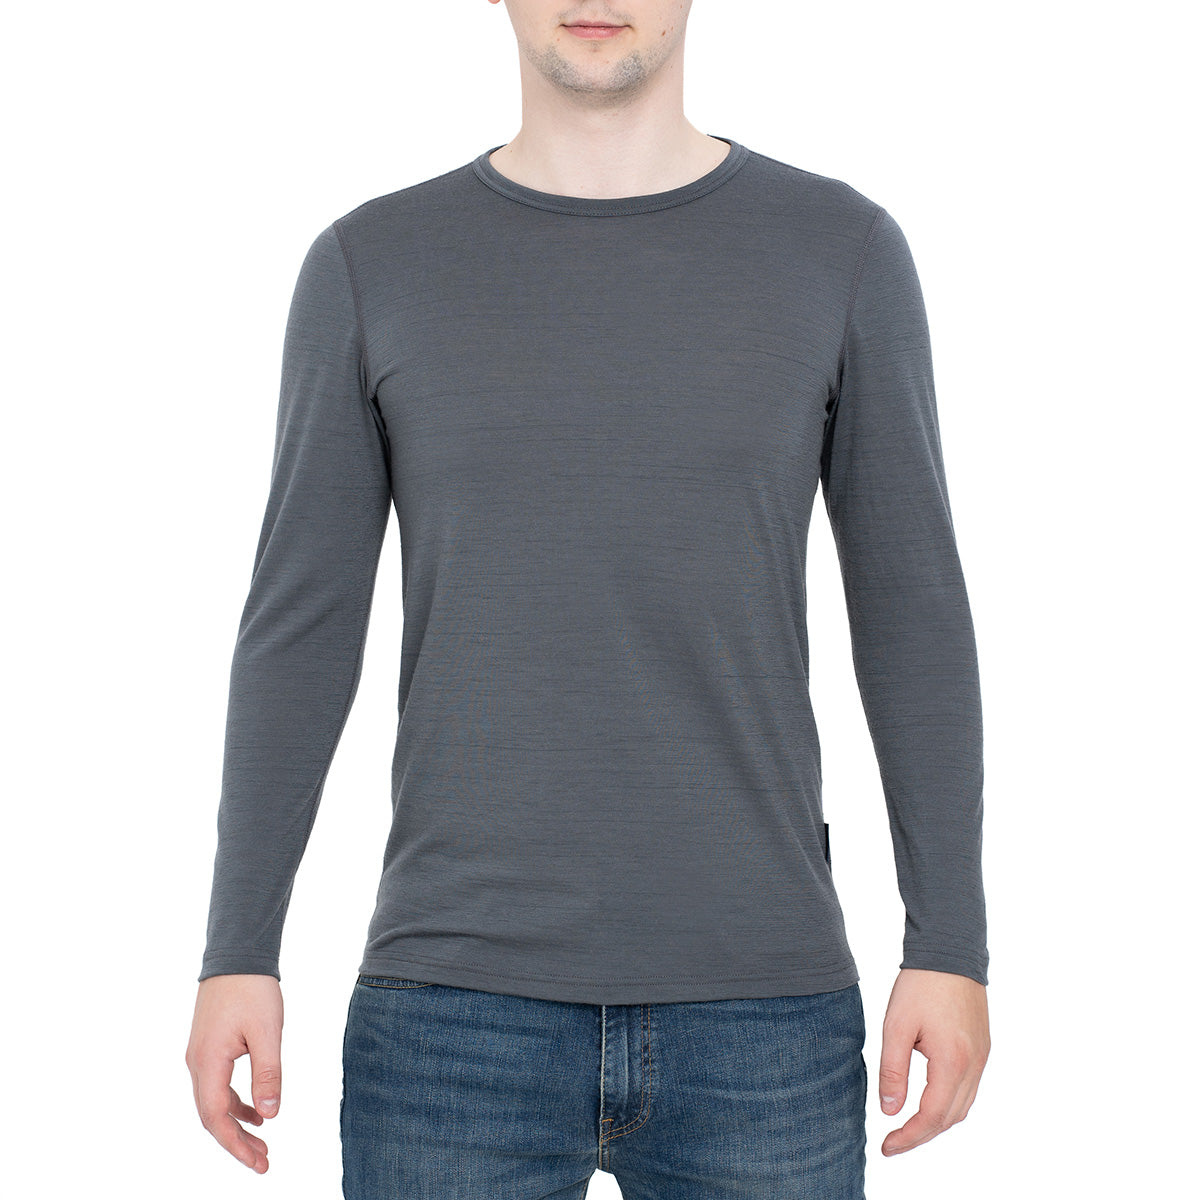 menique Men's Merino 160 Long Sleeve Crew Perfect Grey Color